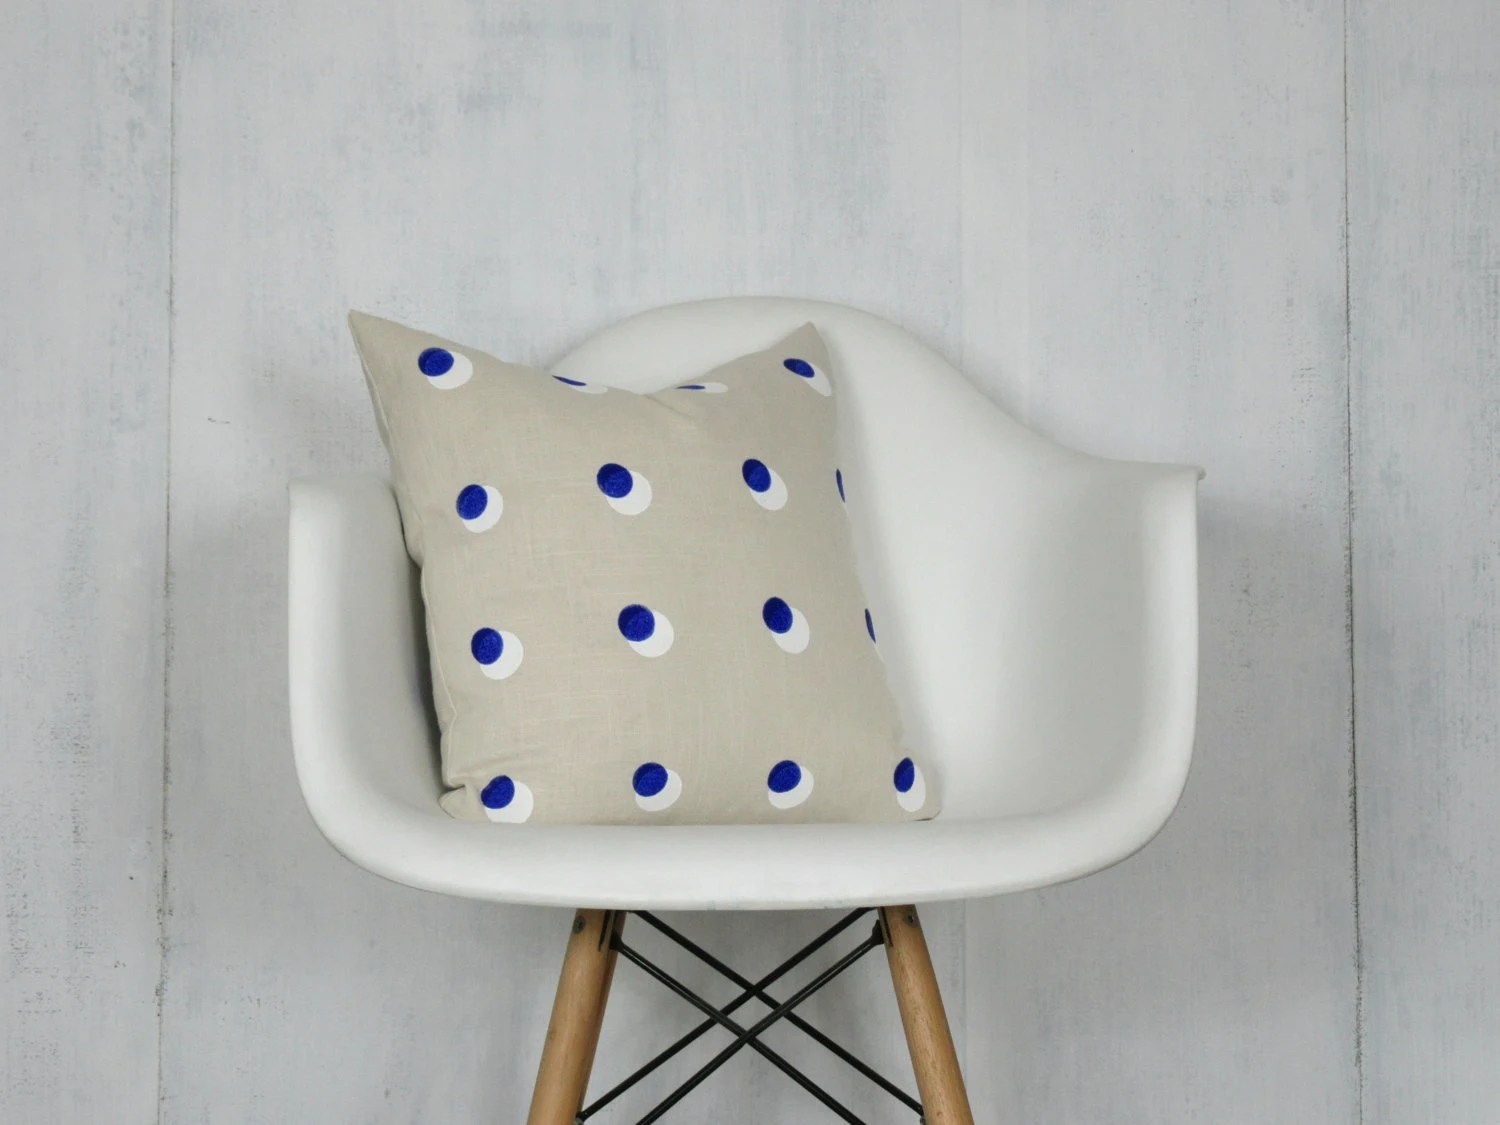 modern art chair covers and linens purple butterfly cream linen pillow cover with blue white dot print etsy image 0